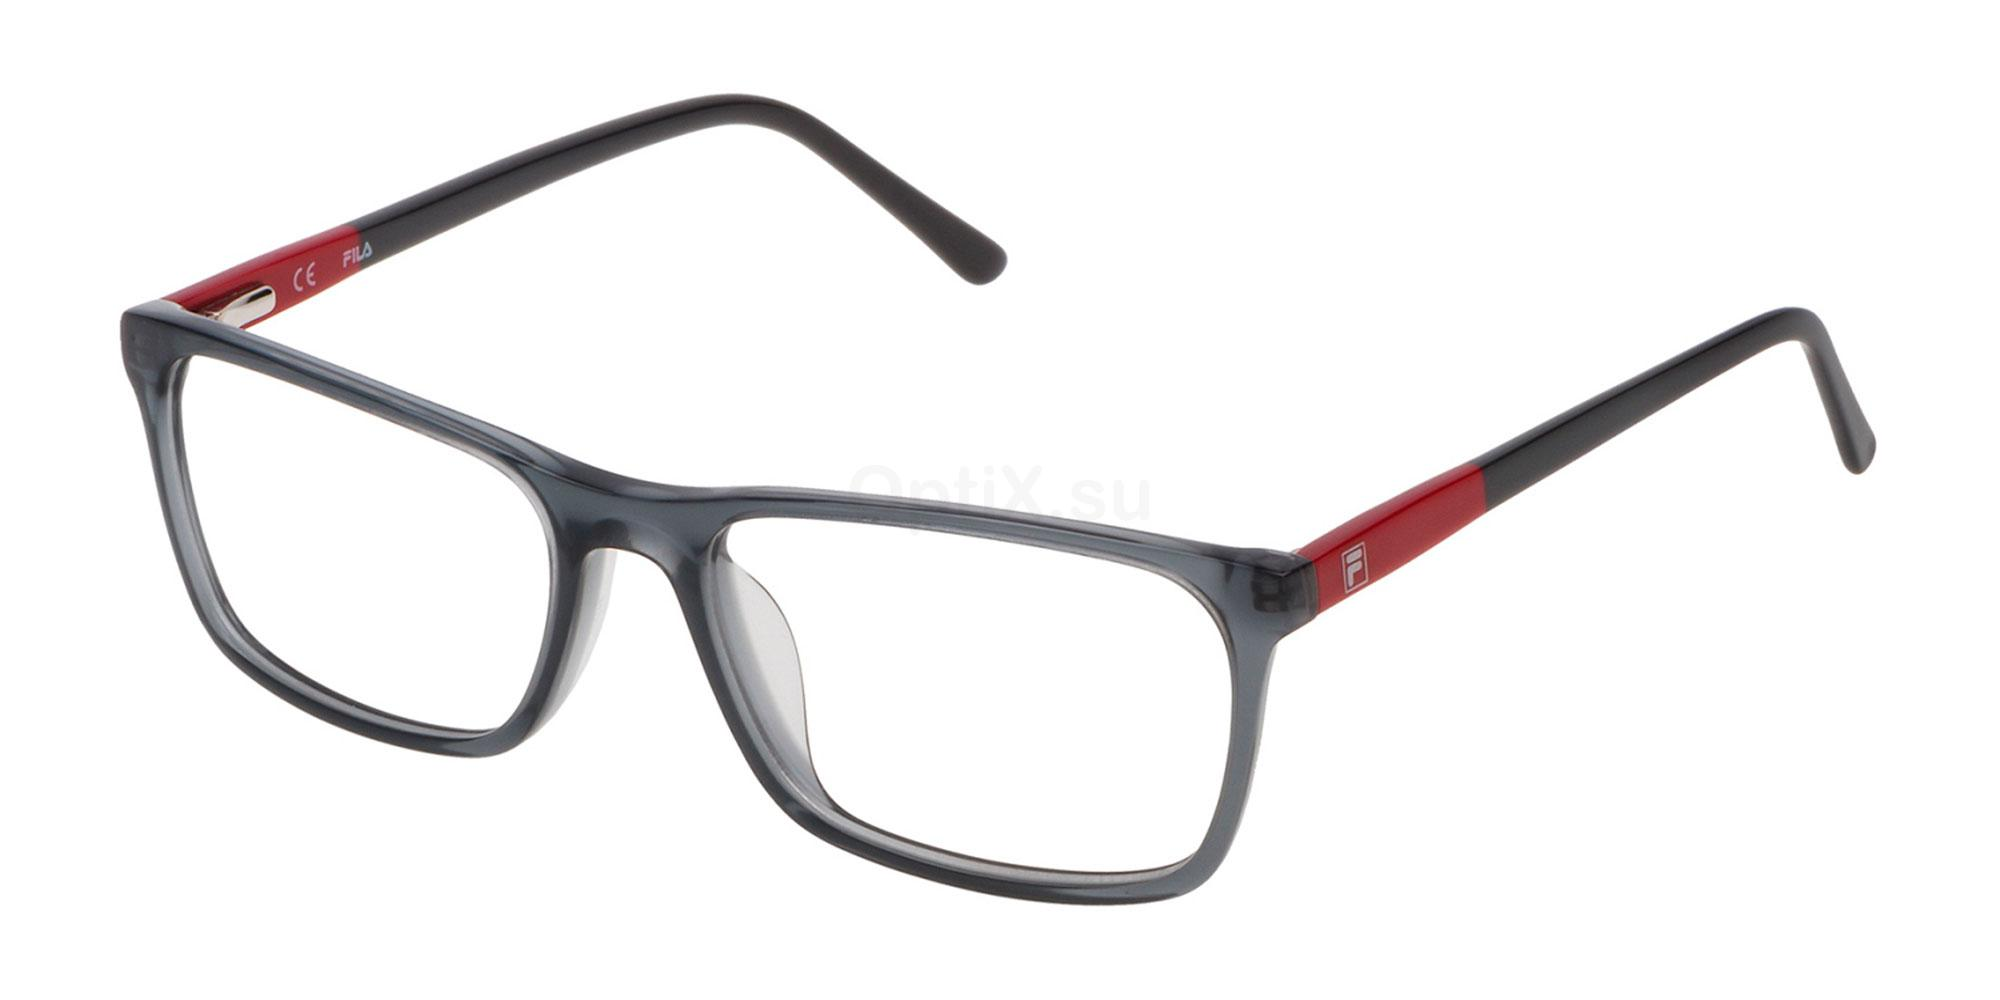 06S8 VF9171 Glasses, Fila